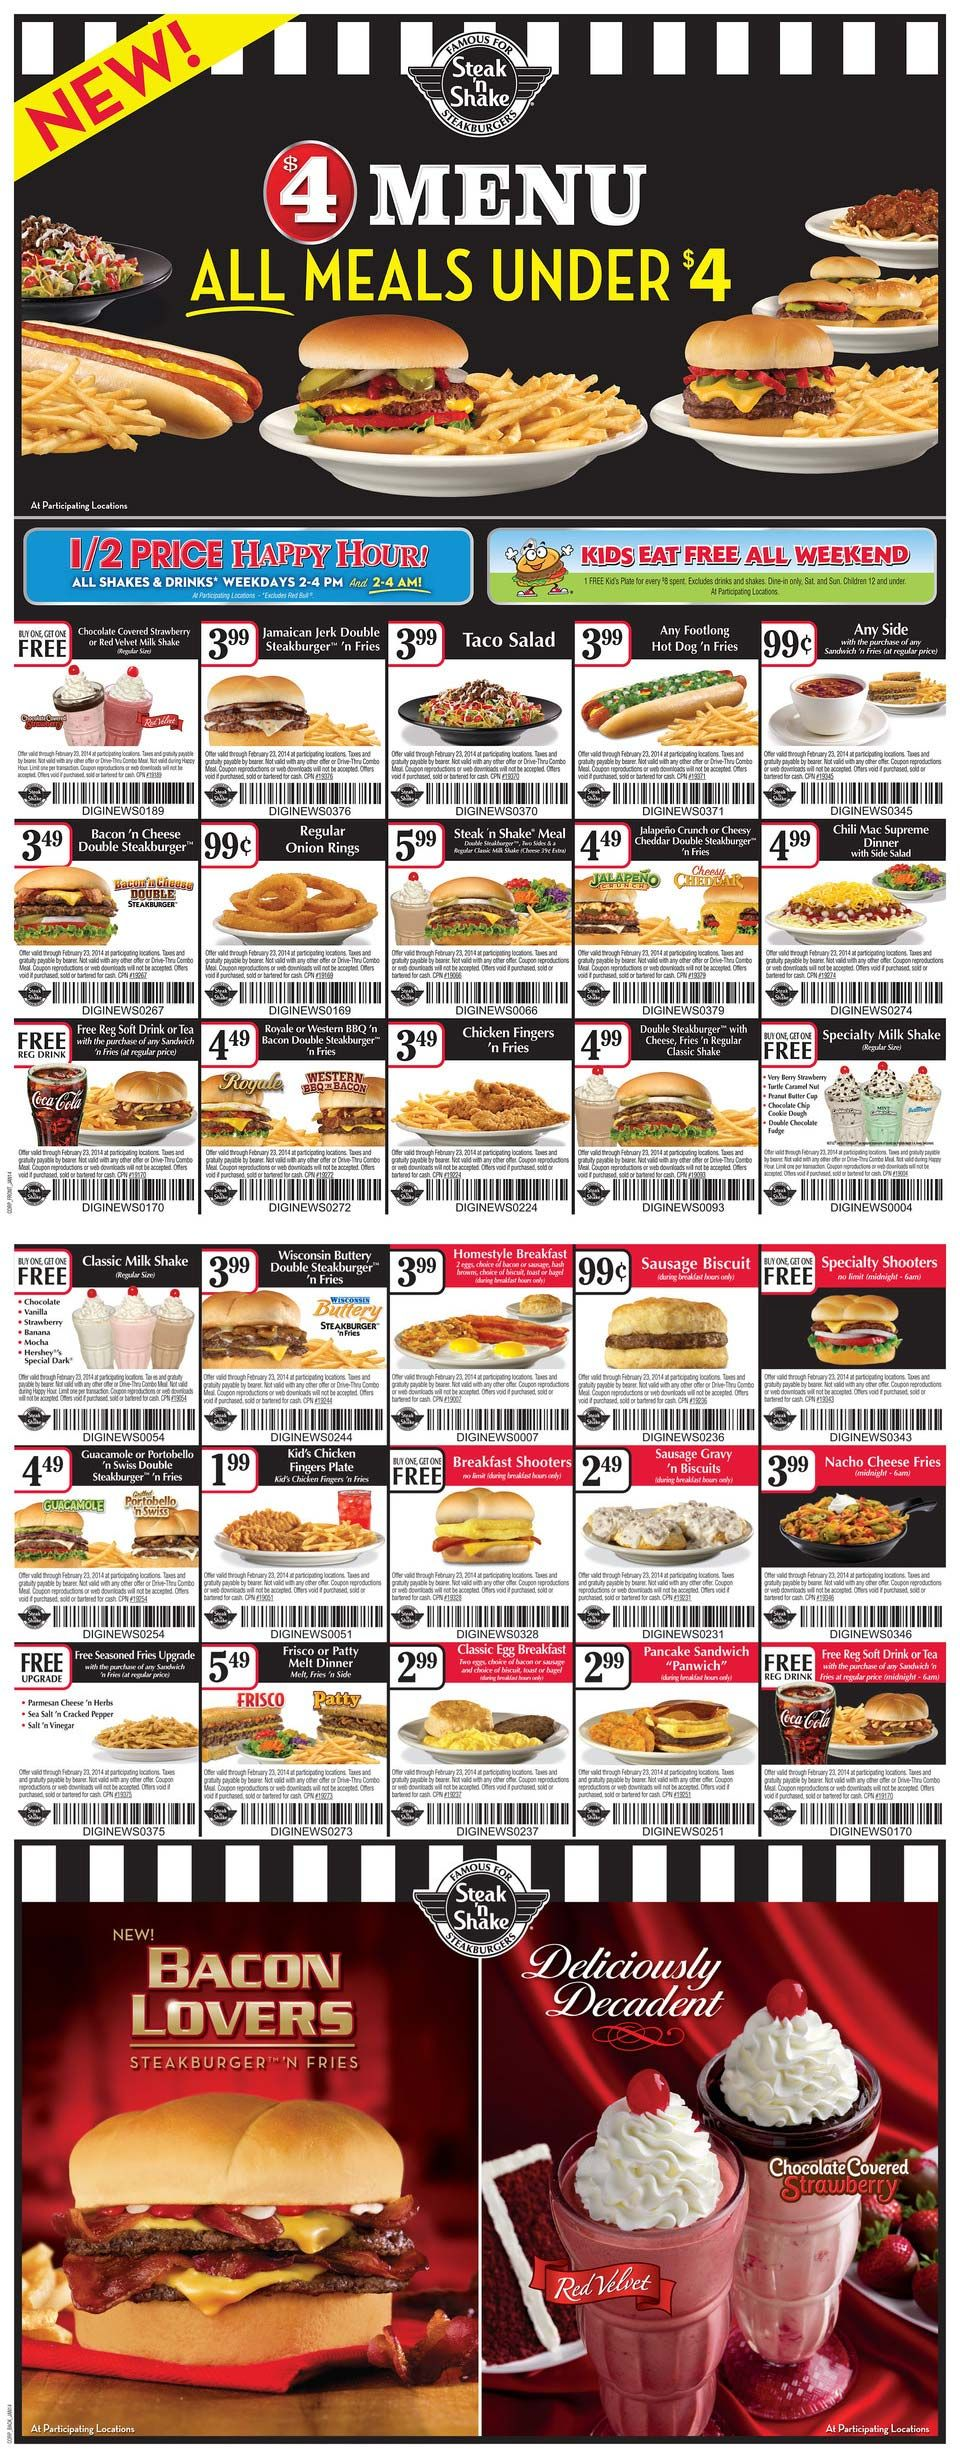 pinned january 7th 2 for 1 burgers and more at steak n shake